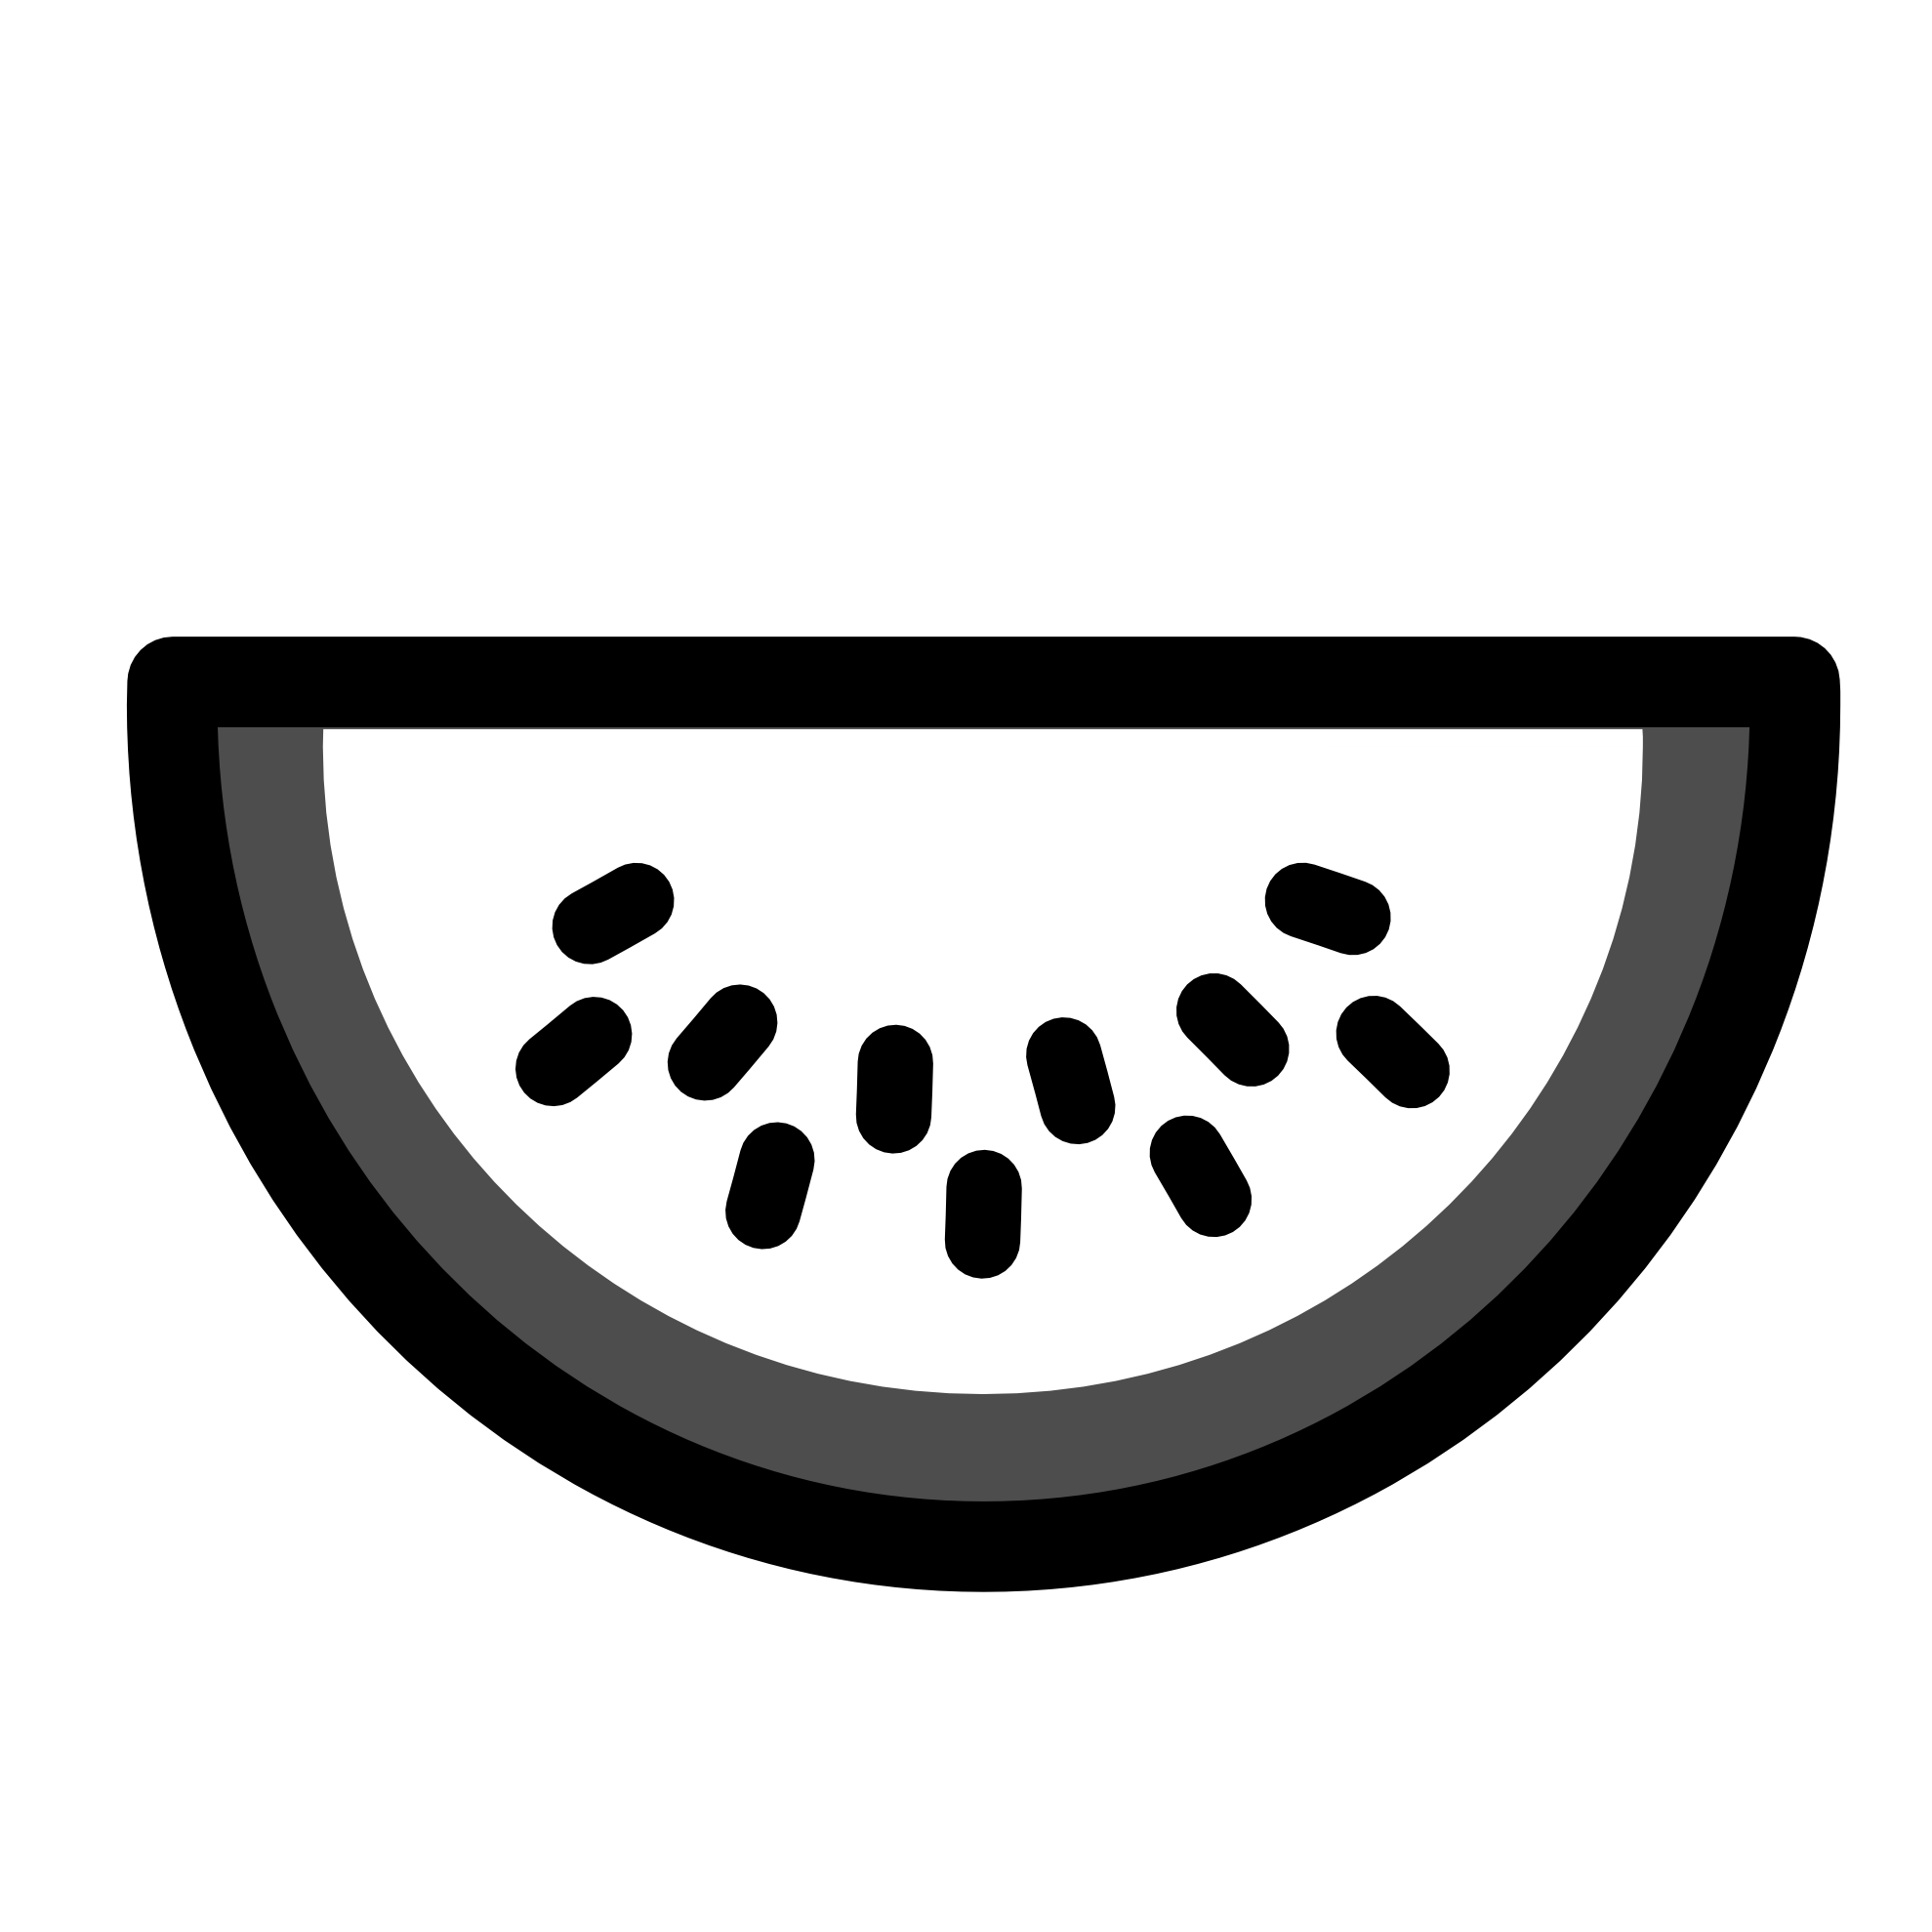 Watermelon free download best. Dog food clipart black and white